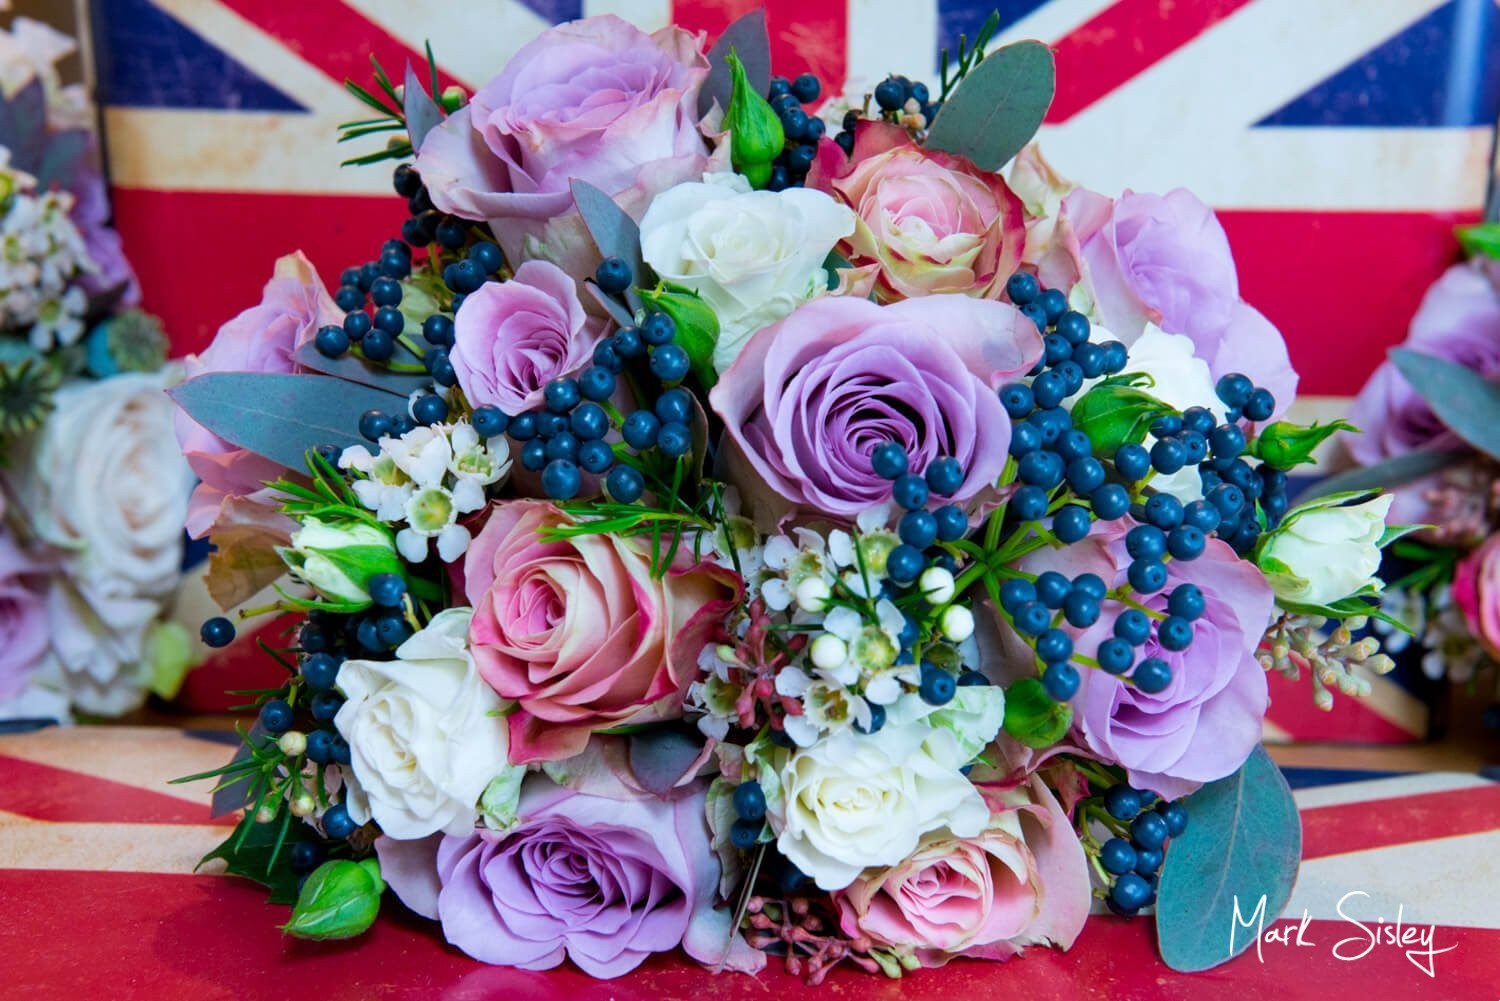 Choosing a wedding photographer - union flag and bridal bouquet